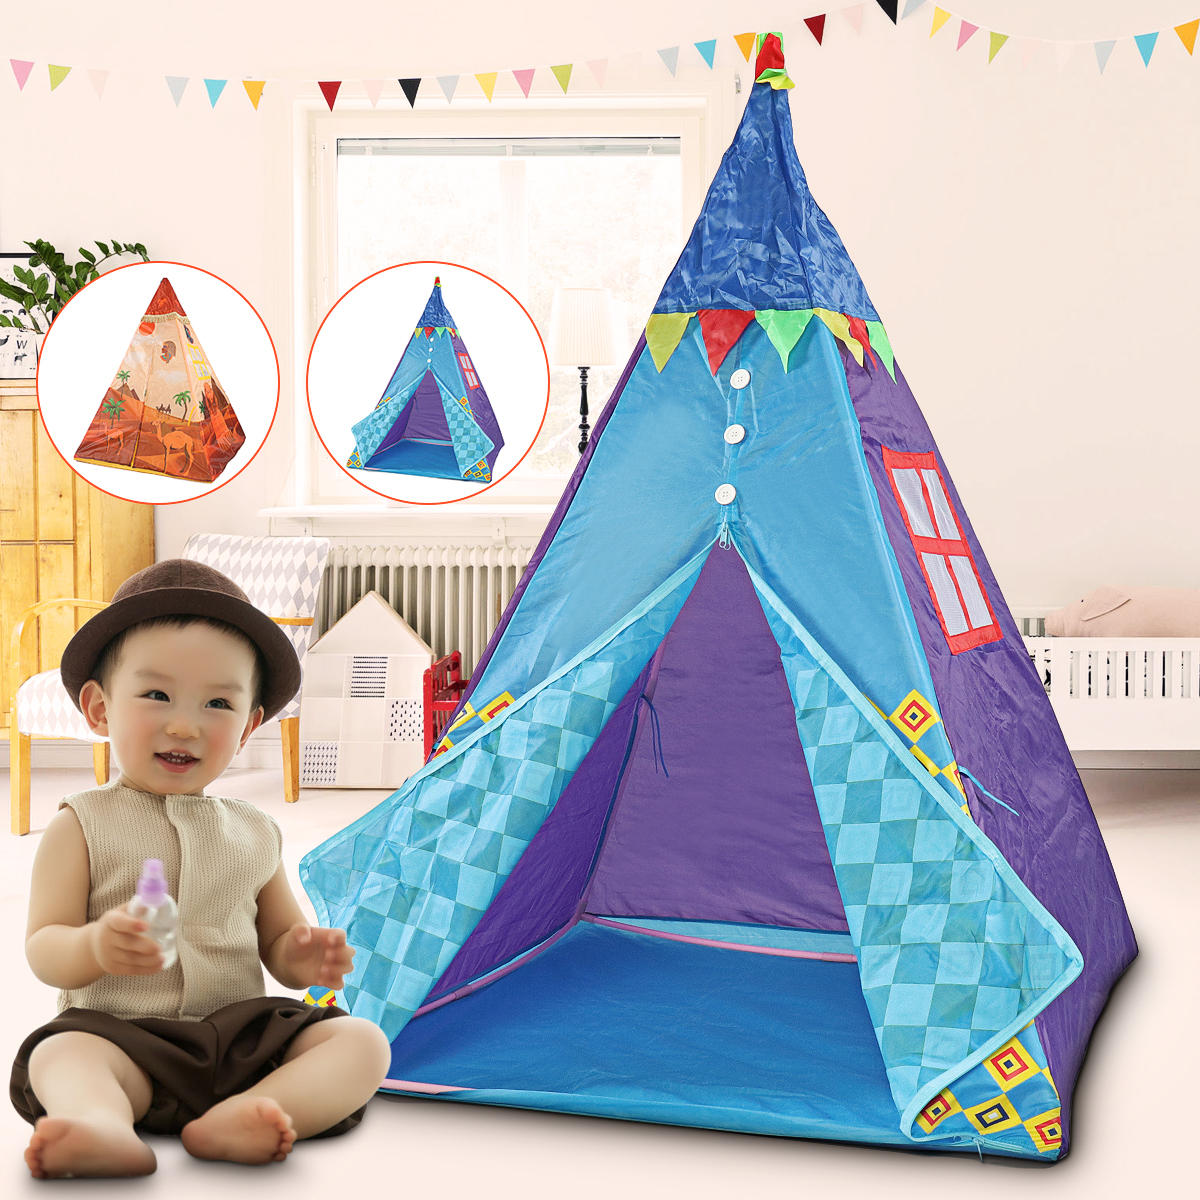 Kids Play Tent 39 3x39 3x51inch Four Poles Kids Play Tent With Led Lantern Cotton Outdoor Children Playhouse Room